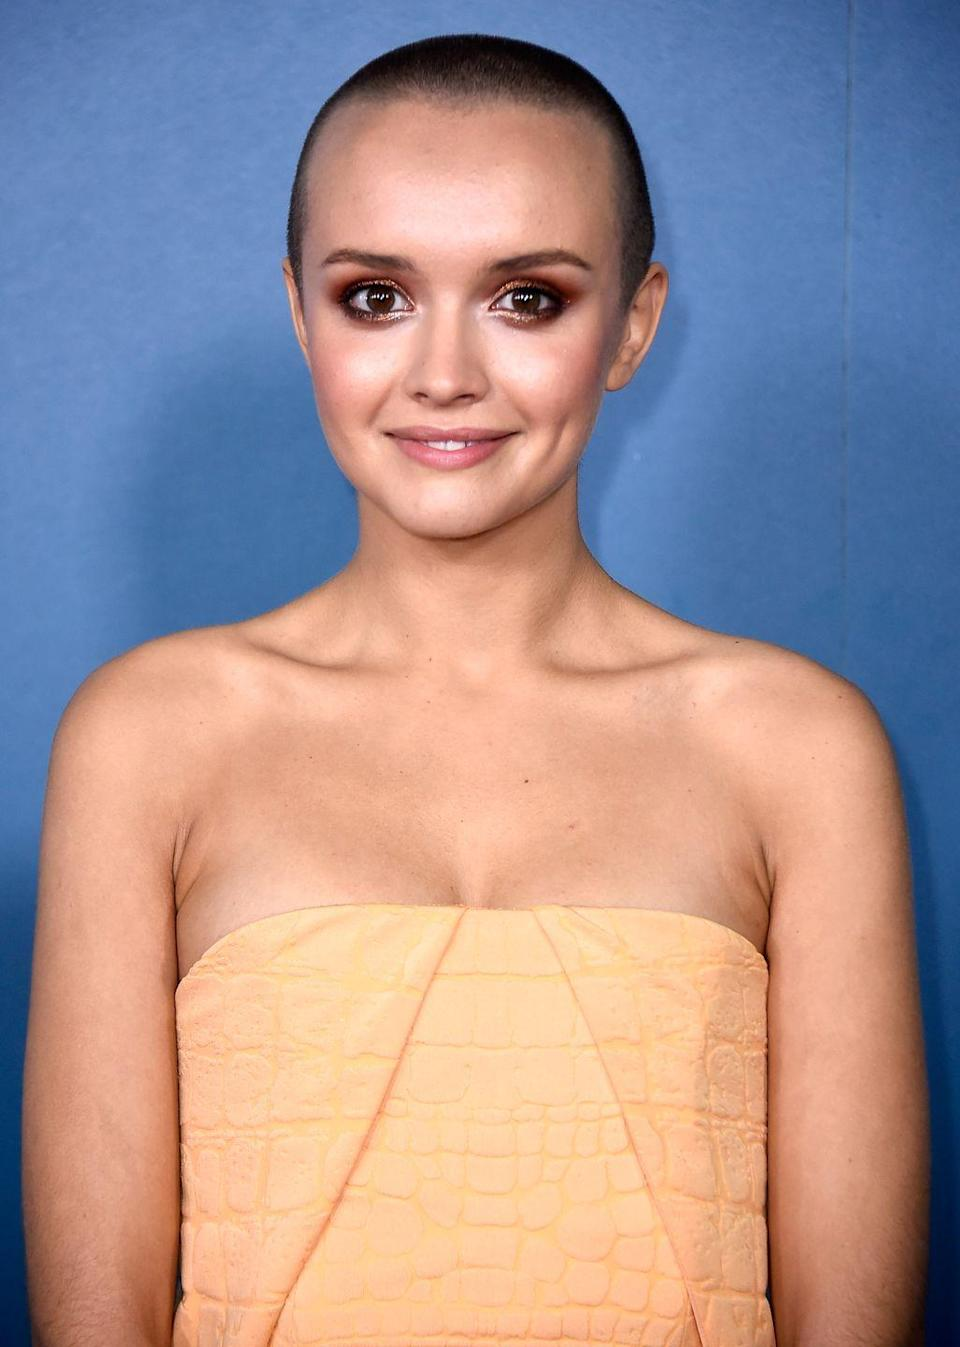 """<p>Olivia Cooke committed to the role of a leukemia patient in <em>Me and Earl and the Dying Girl</em> by shaving off her auburn locks. """"It was the best thing I did to get into character and to feel all of the emotions I was supposed to be feeling at the time,"""" Cooke said <a href=""""https://www.youtube.com/watch?v=oleX-bRJZUw"""" rel=""""nofollow noopener"""" target=""""_blank"""" data-ylk=""""slk:in a TV interview"""" class=""""link rapid-noclick-resp"""">in a TV interview</a>. </p>"""